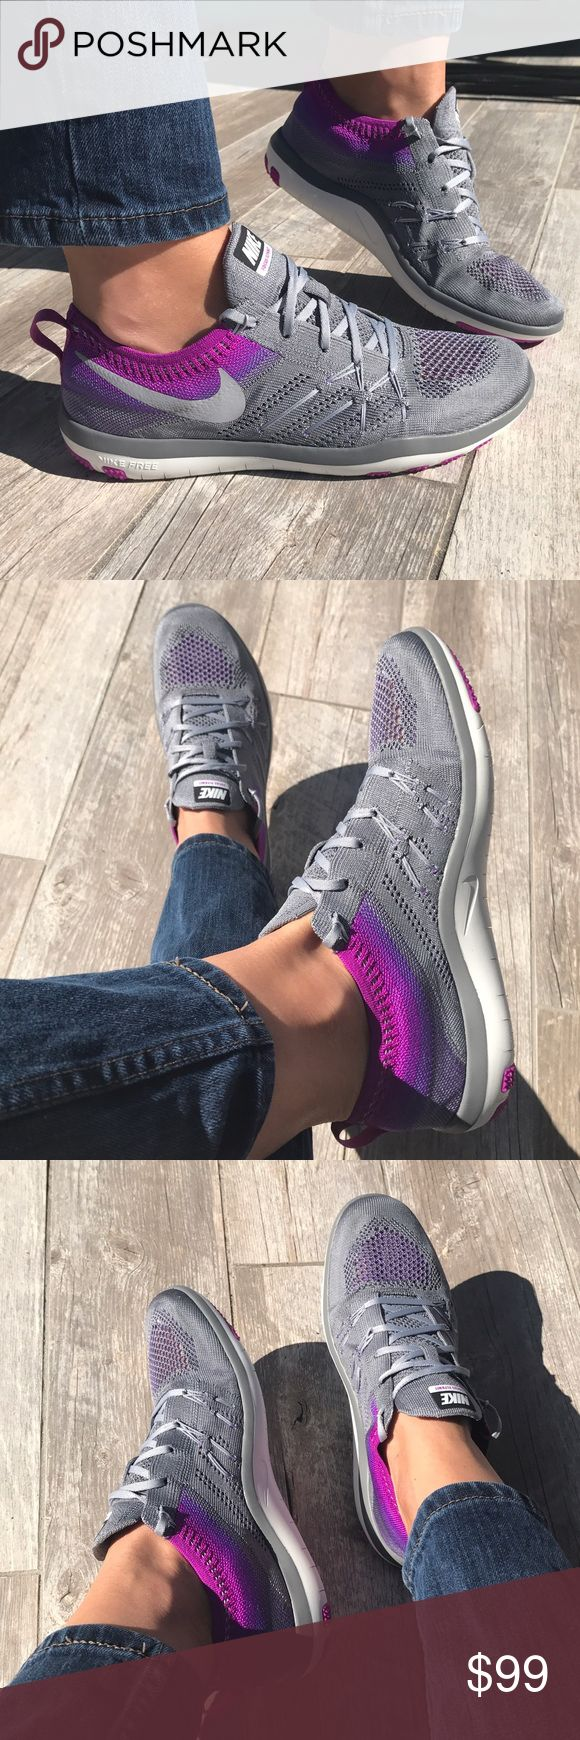 Purple-Grey mix! ---Price Firm--- Purple-Grey mix!Training ---Price Firm---🌂 Nike Shoes Sneakers